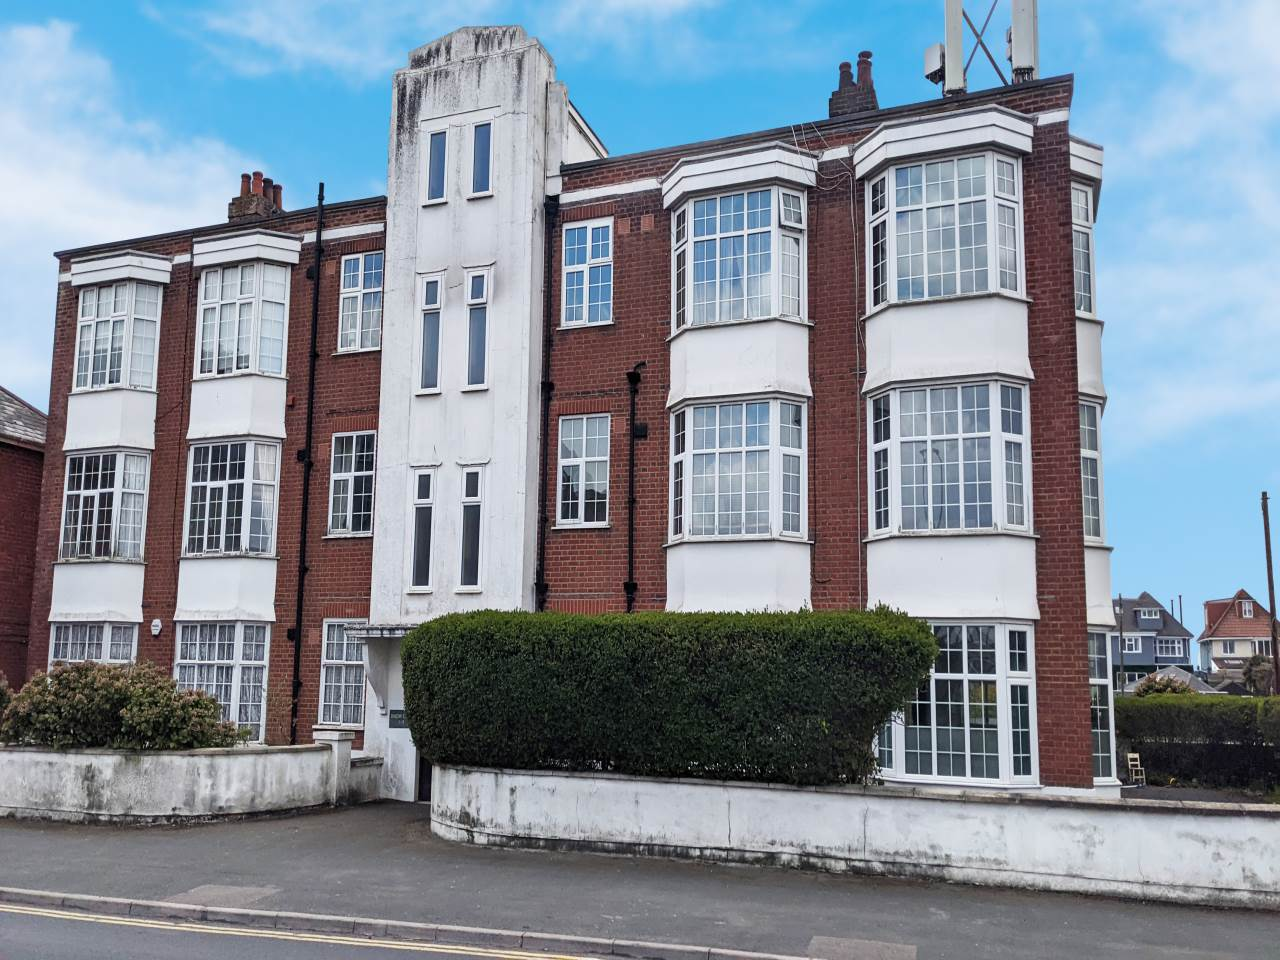 * ART DECO DEVELOPMENT * FIRST FLOOR * FOUR BEDROOMS * LOUNGE * KITCHEN * SEPARATE WC & BATHROOM * RETAINS MANY ORIGINAL FEATURES * UPVC DOUBLE GLAZING * CLOSE TO BLUE FLAG BEACHES & SOUTHBOURNE SHOPS * NO CHAIN * EXCELLENT INVESTMENT OPPORTUNITY *